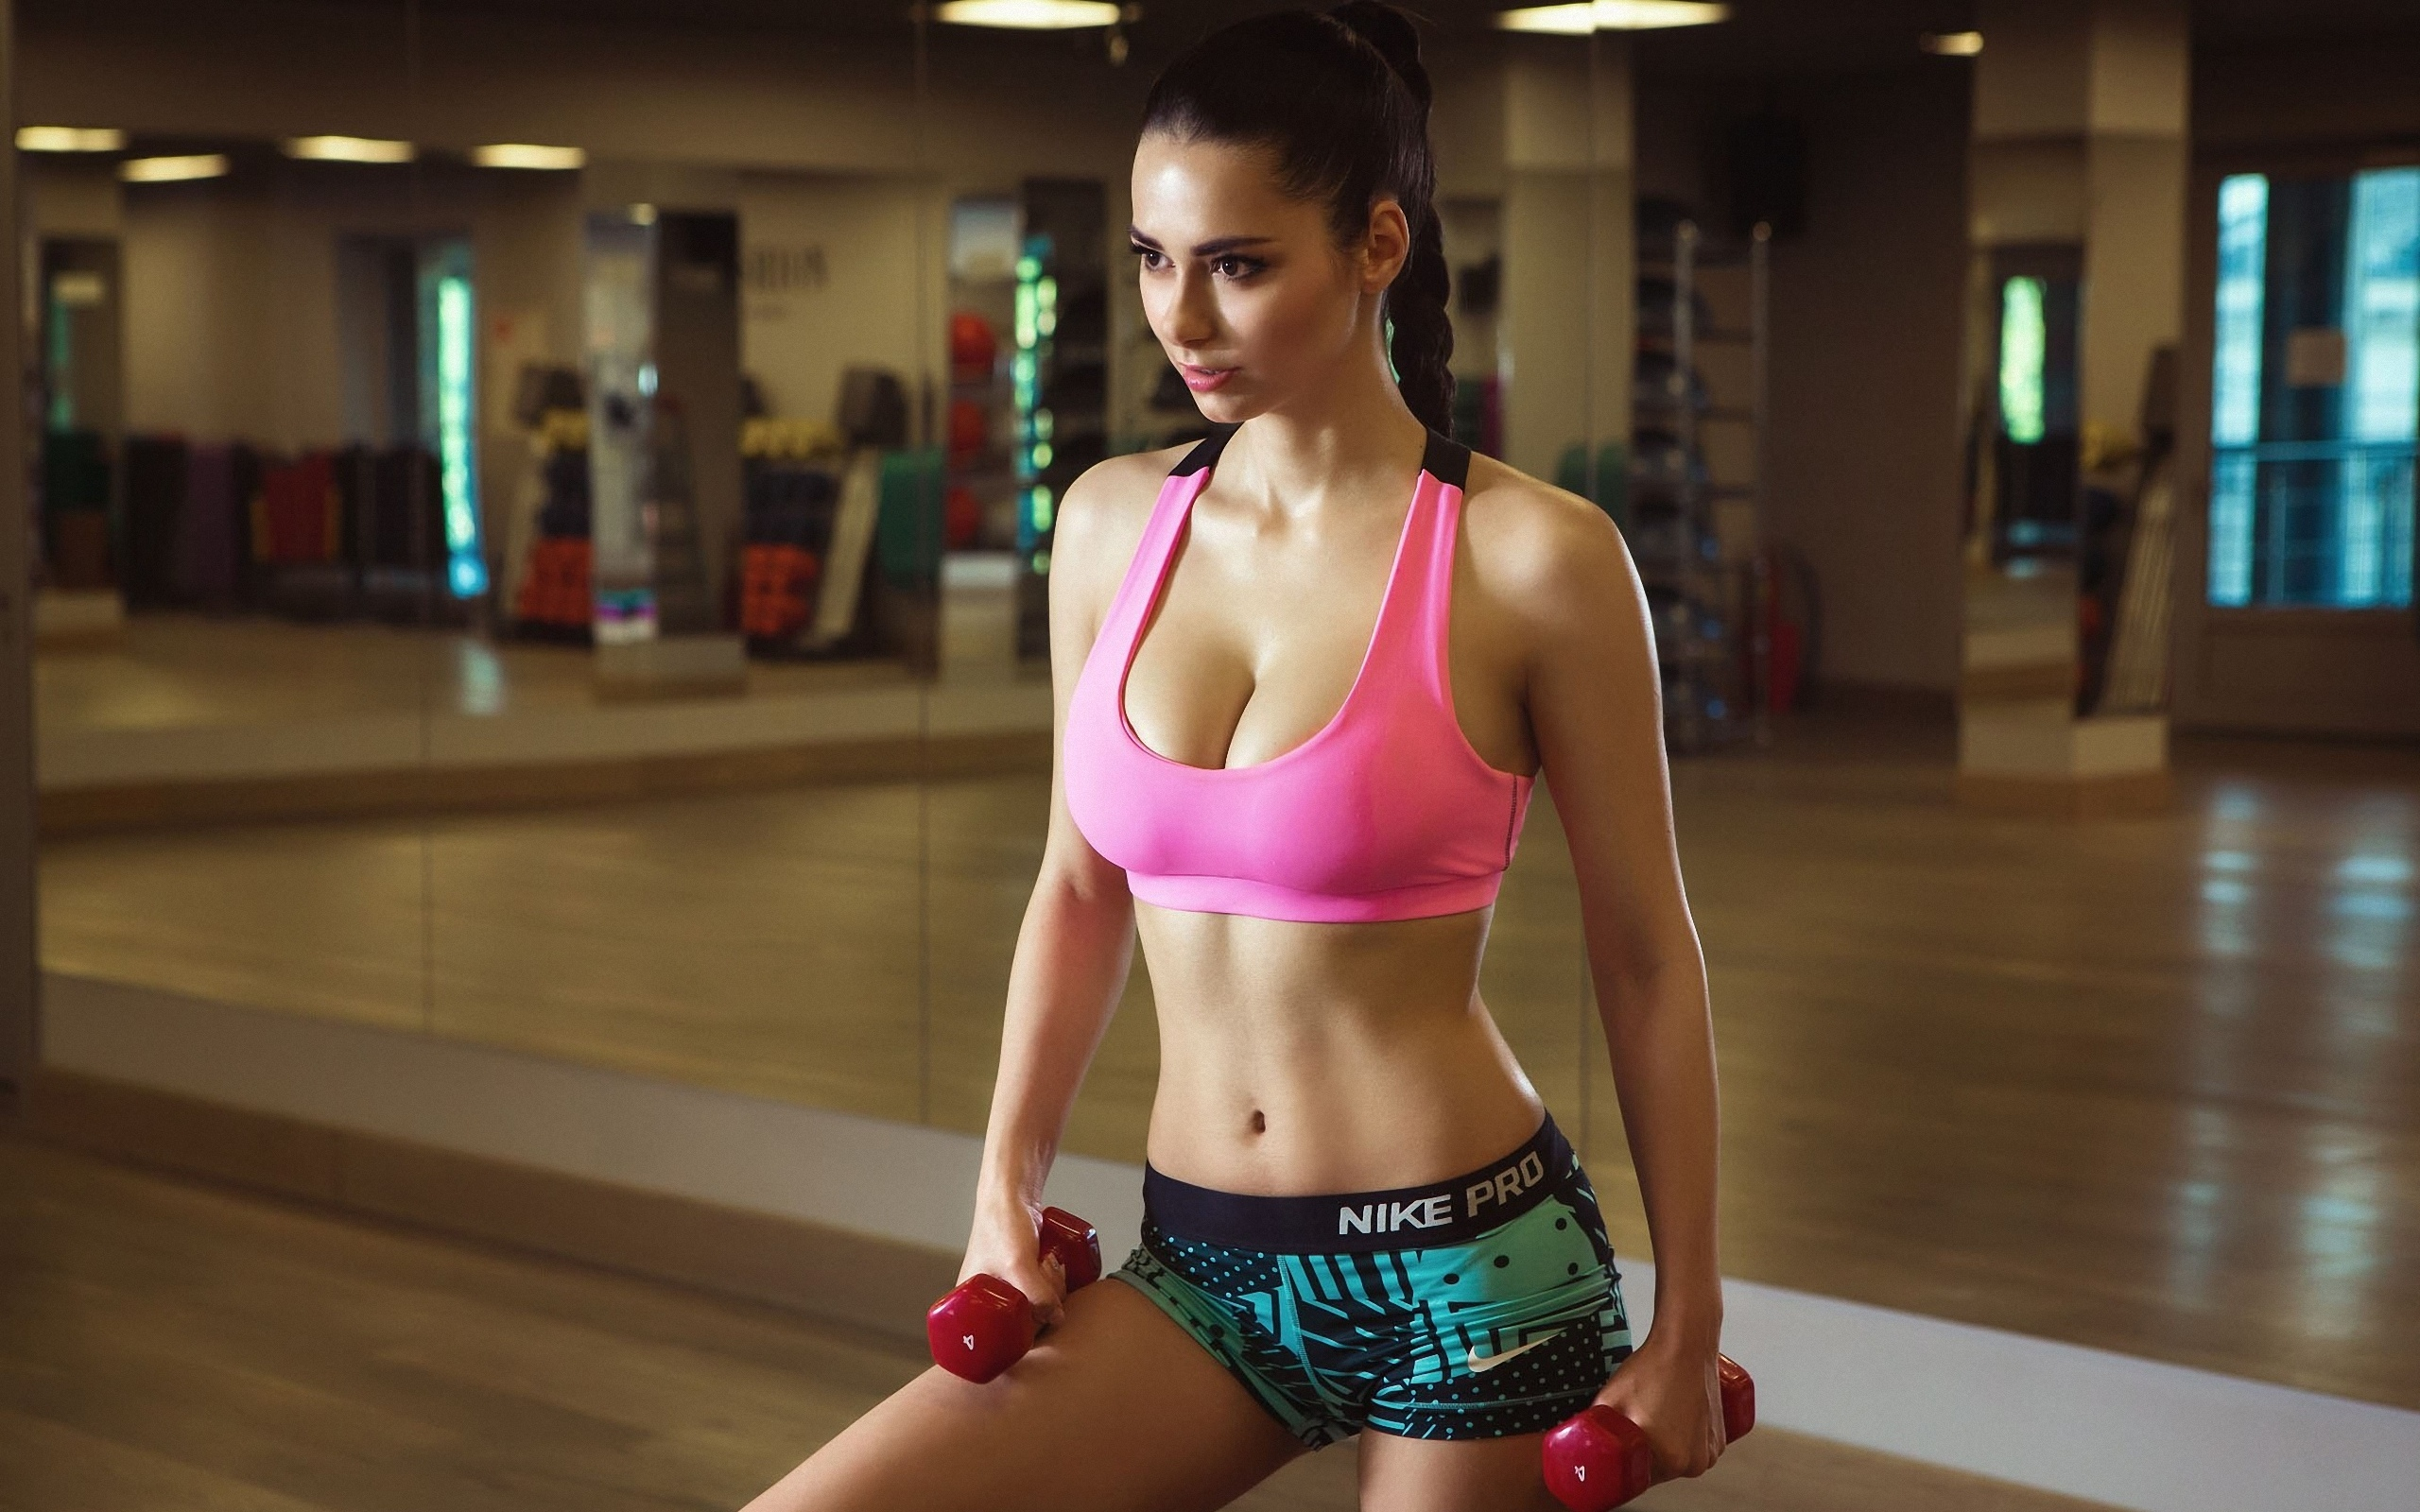 Image: Brunette, Helga Lovekaty, model, girl, fitness, dumbbell, t-shirt, shorts, braid, mirror